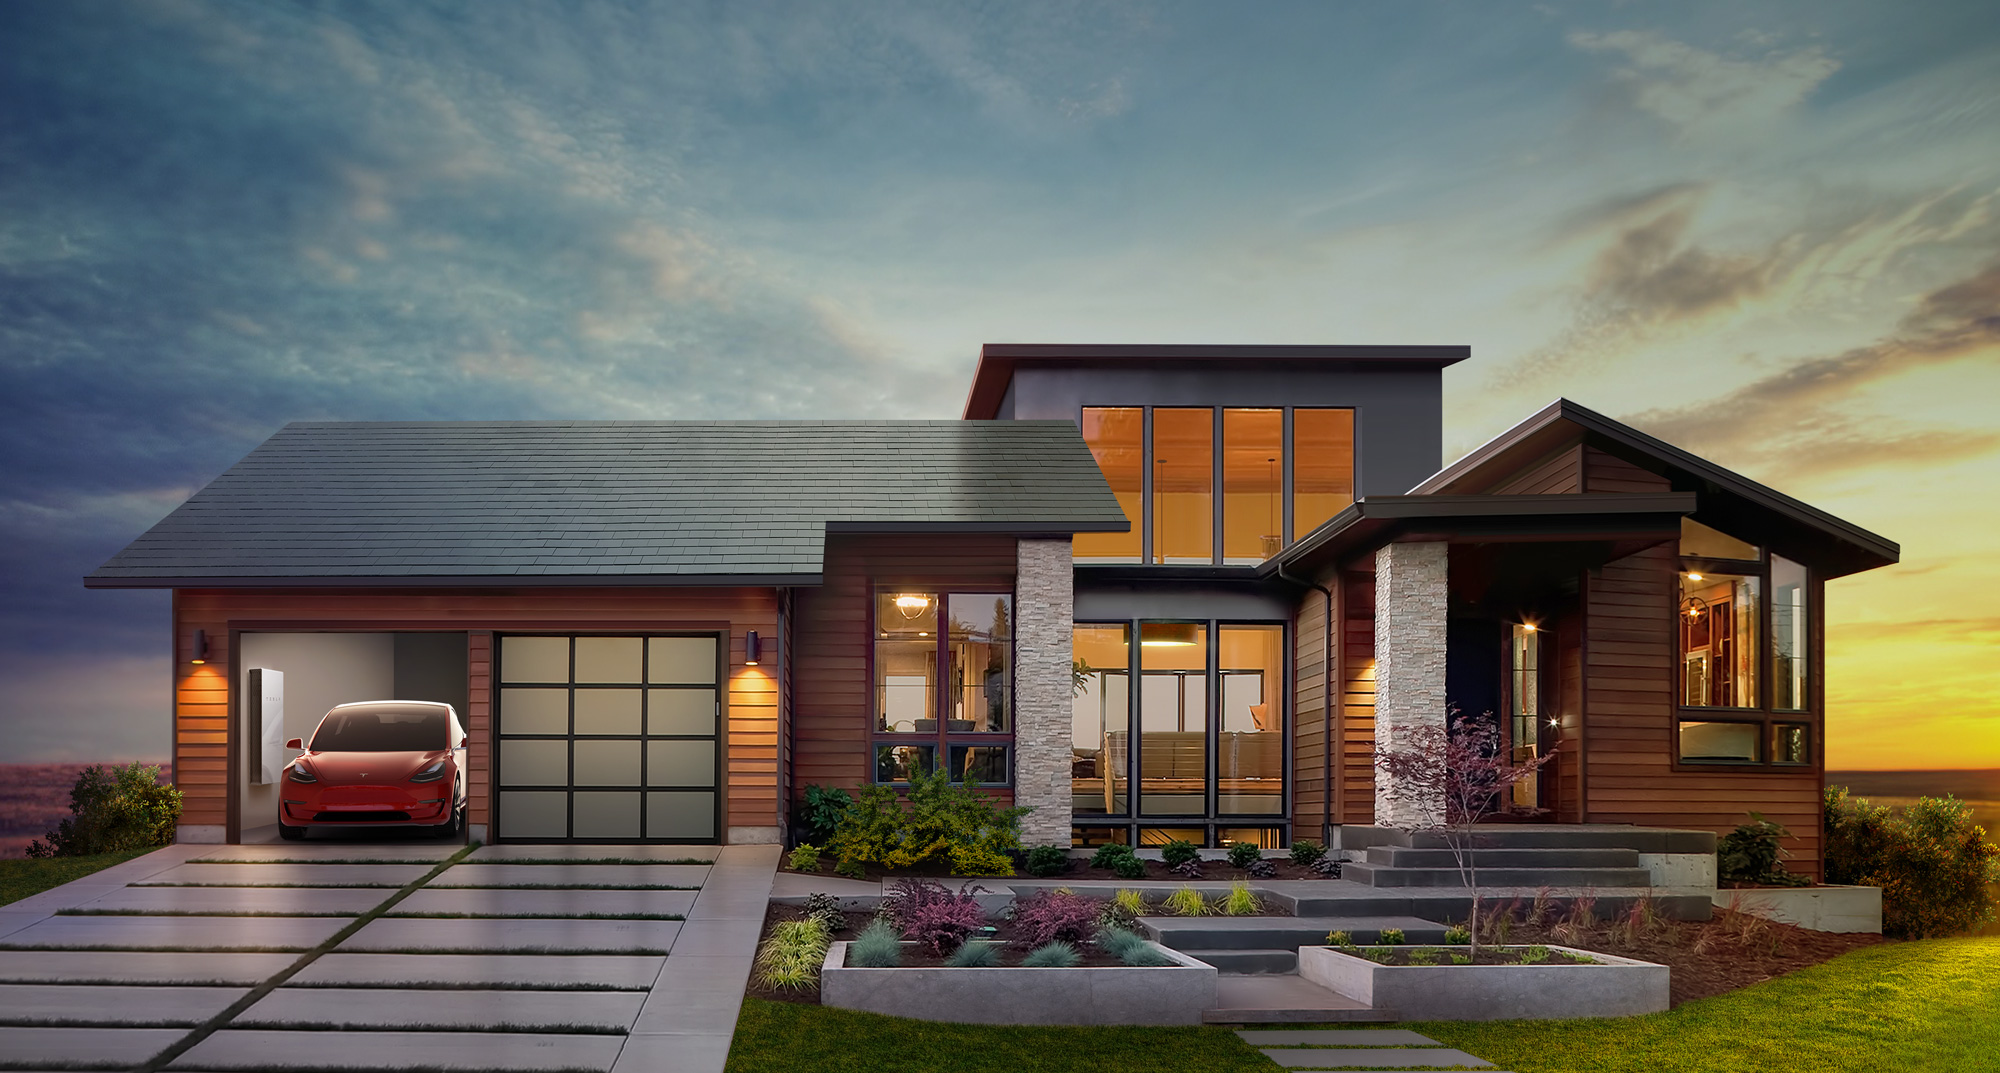 Tesla/SolarCity have announced the launch of a building integrated photovoltaics (BIPV) residential roofing system comprised of a range of different tile formats. Tesla/SolarCity